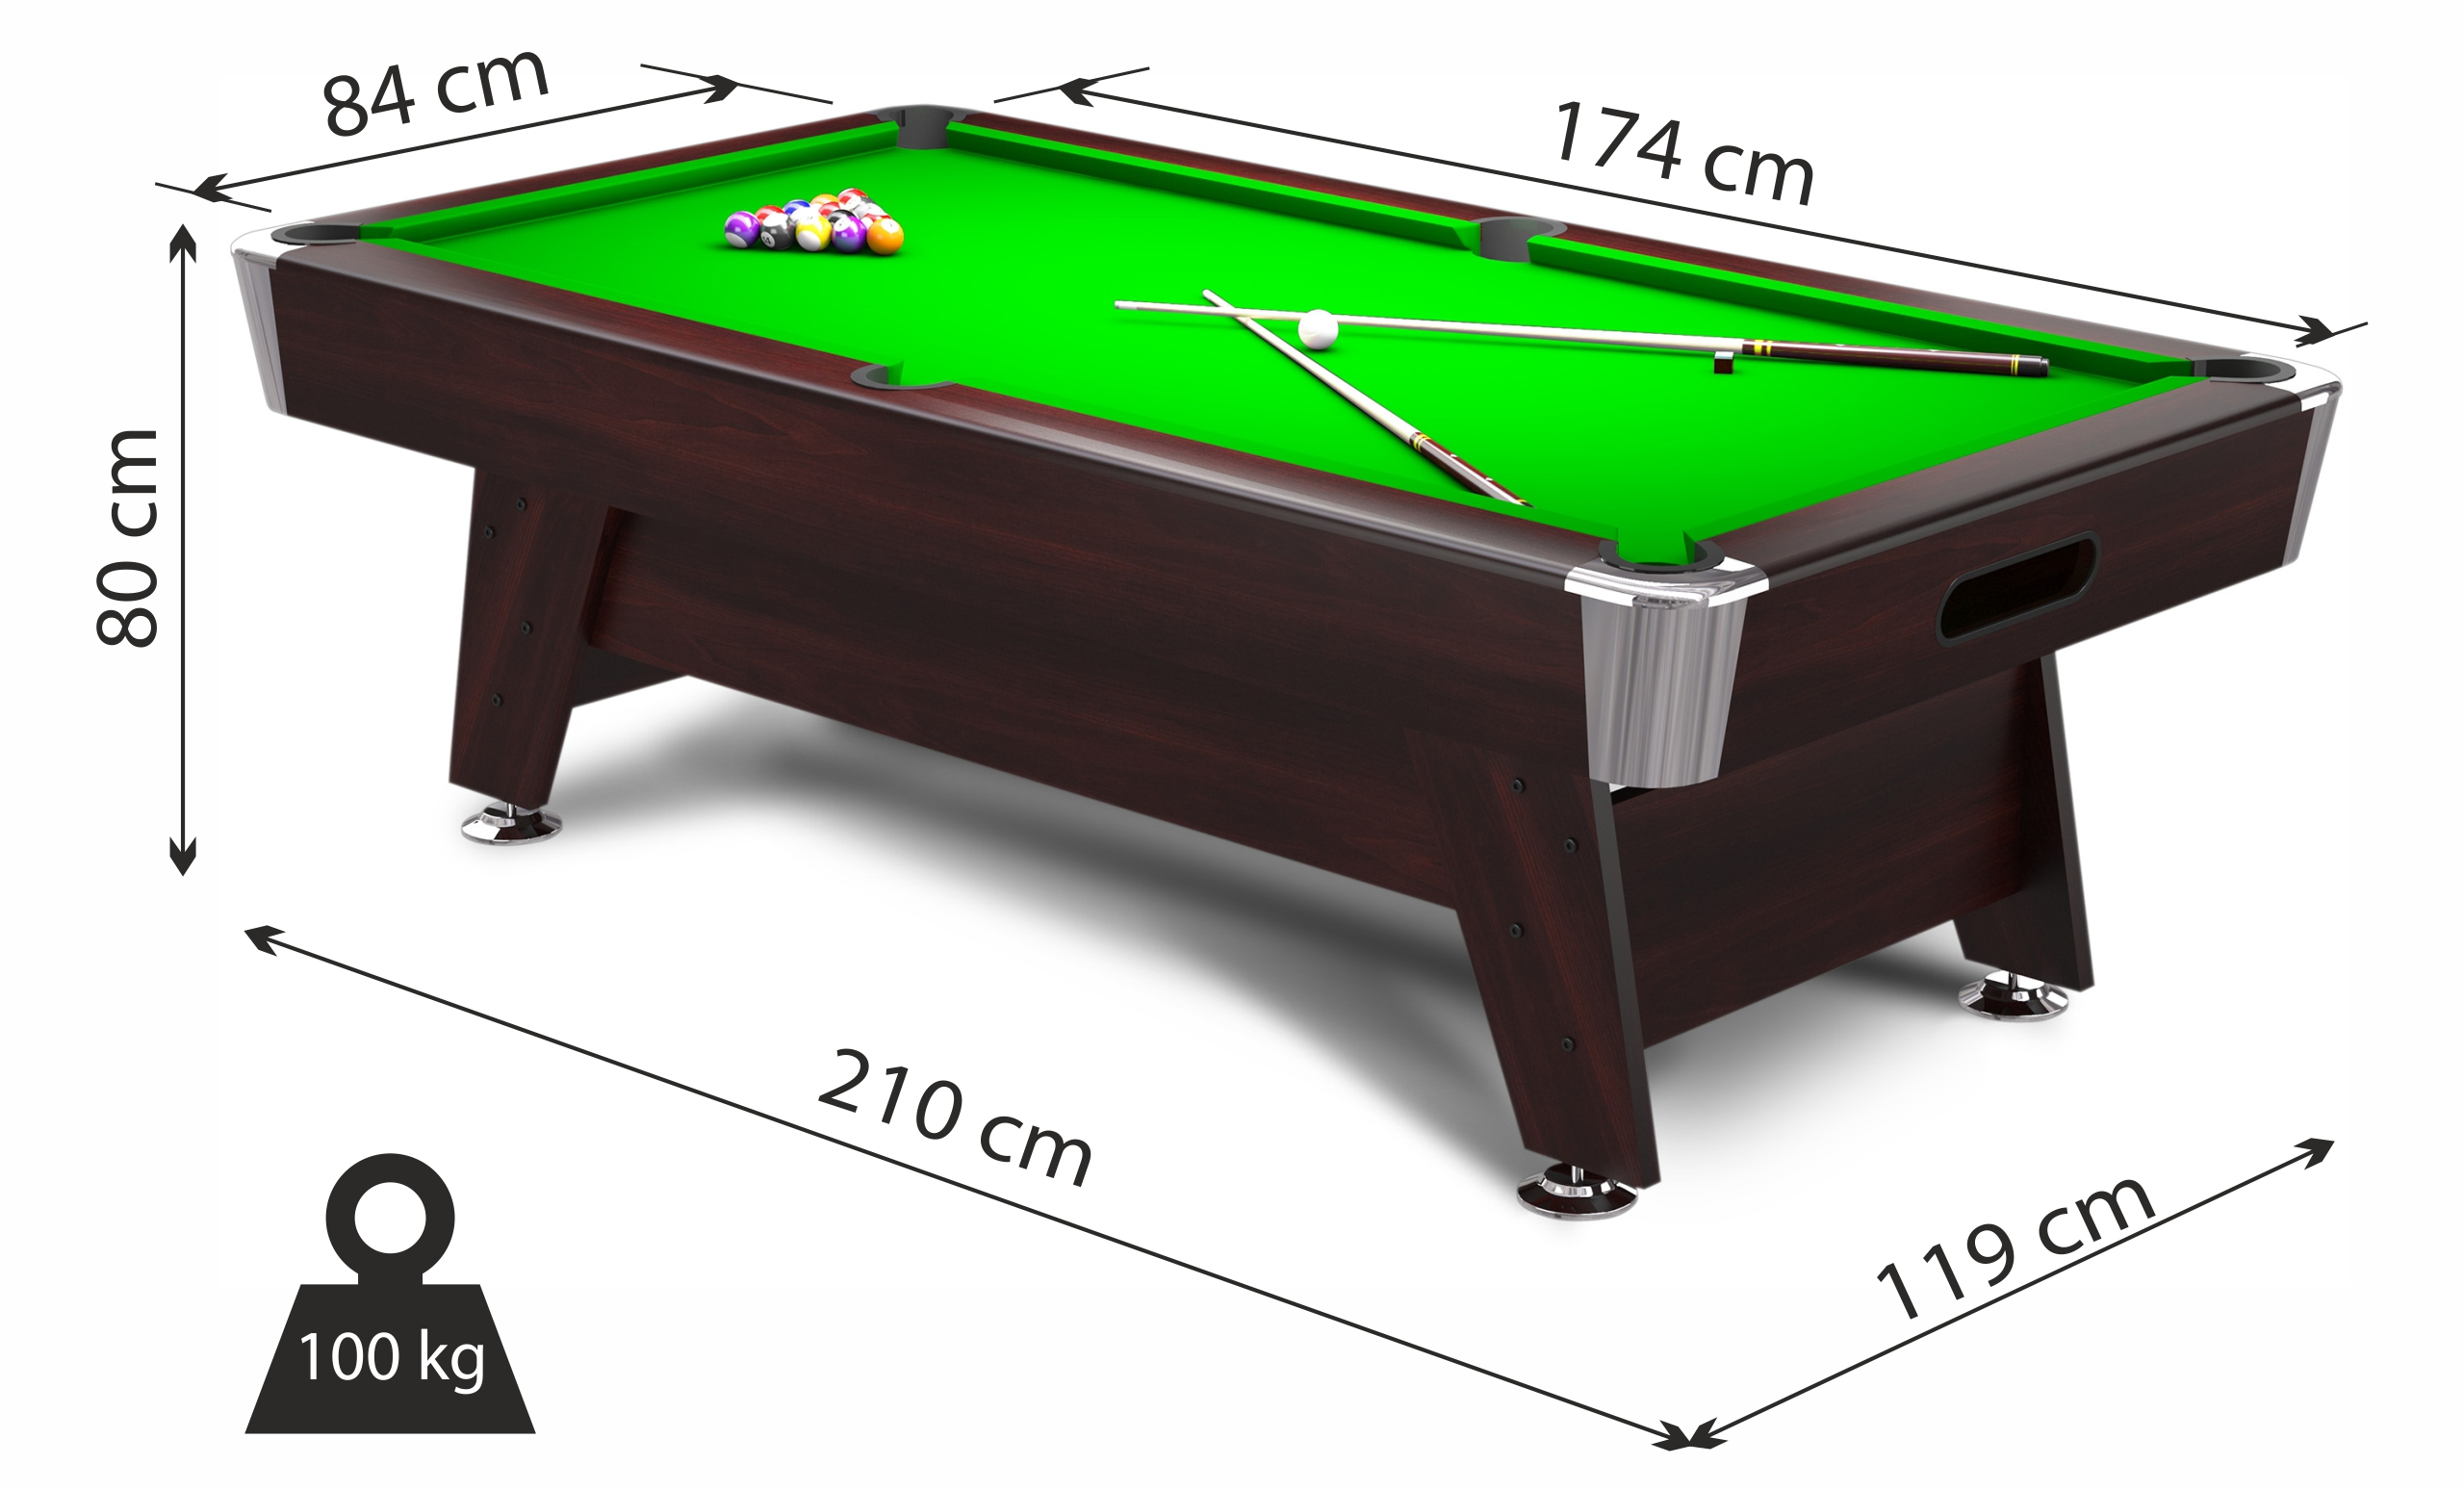 Diamond FT MDF Bed Pool Table Radley Pool Tables - Billiard table and accessories